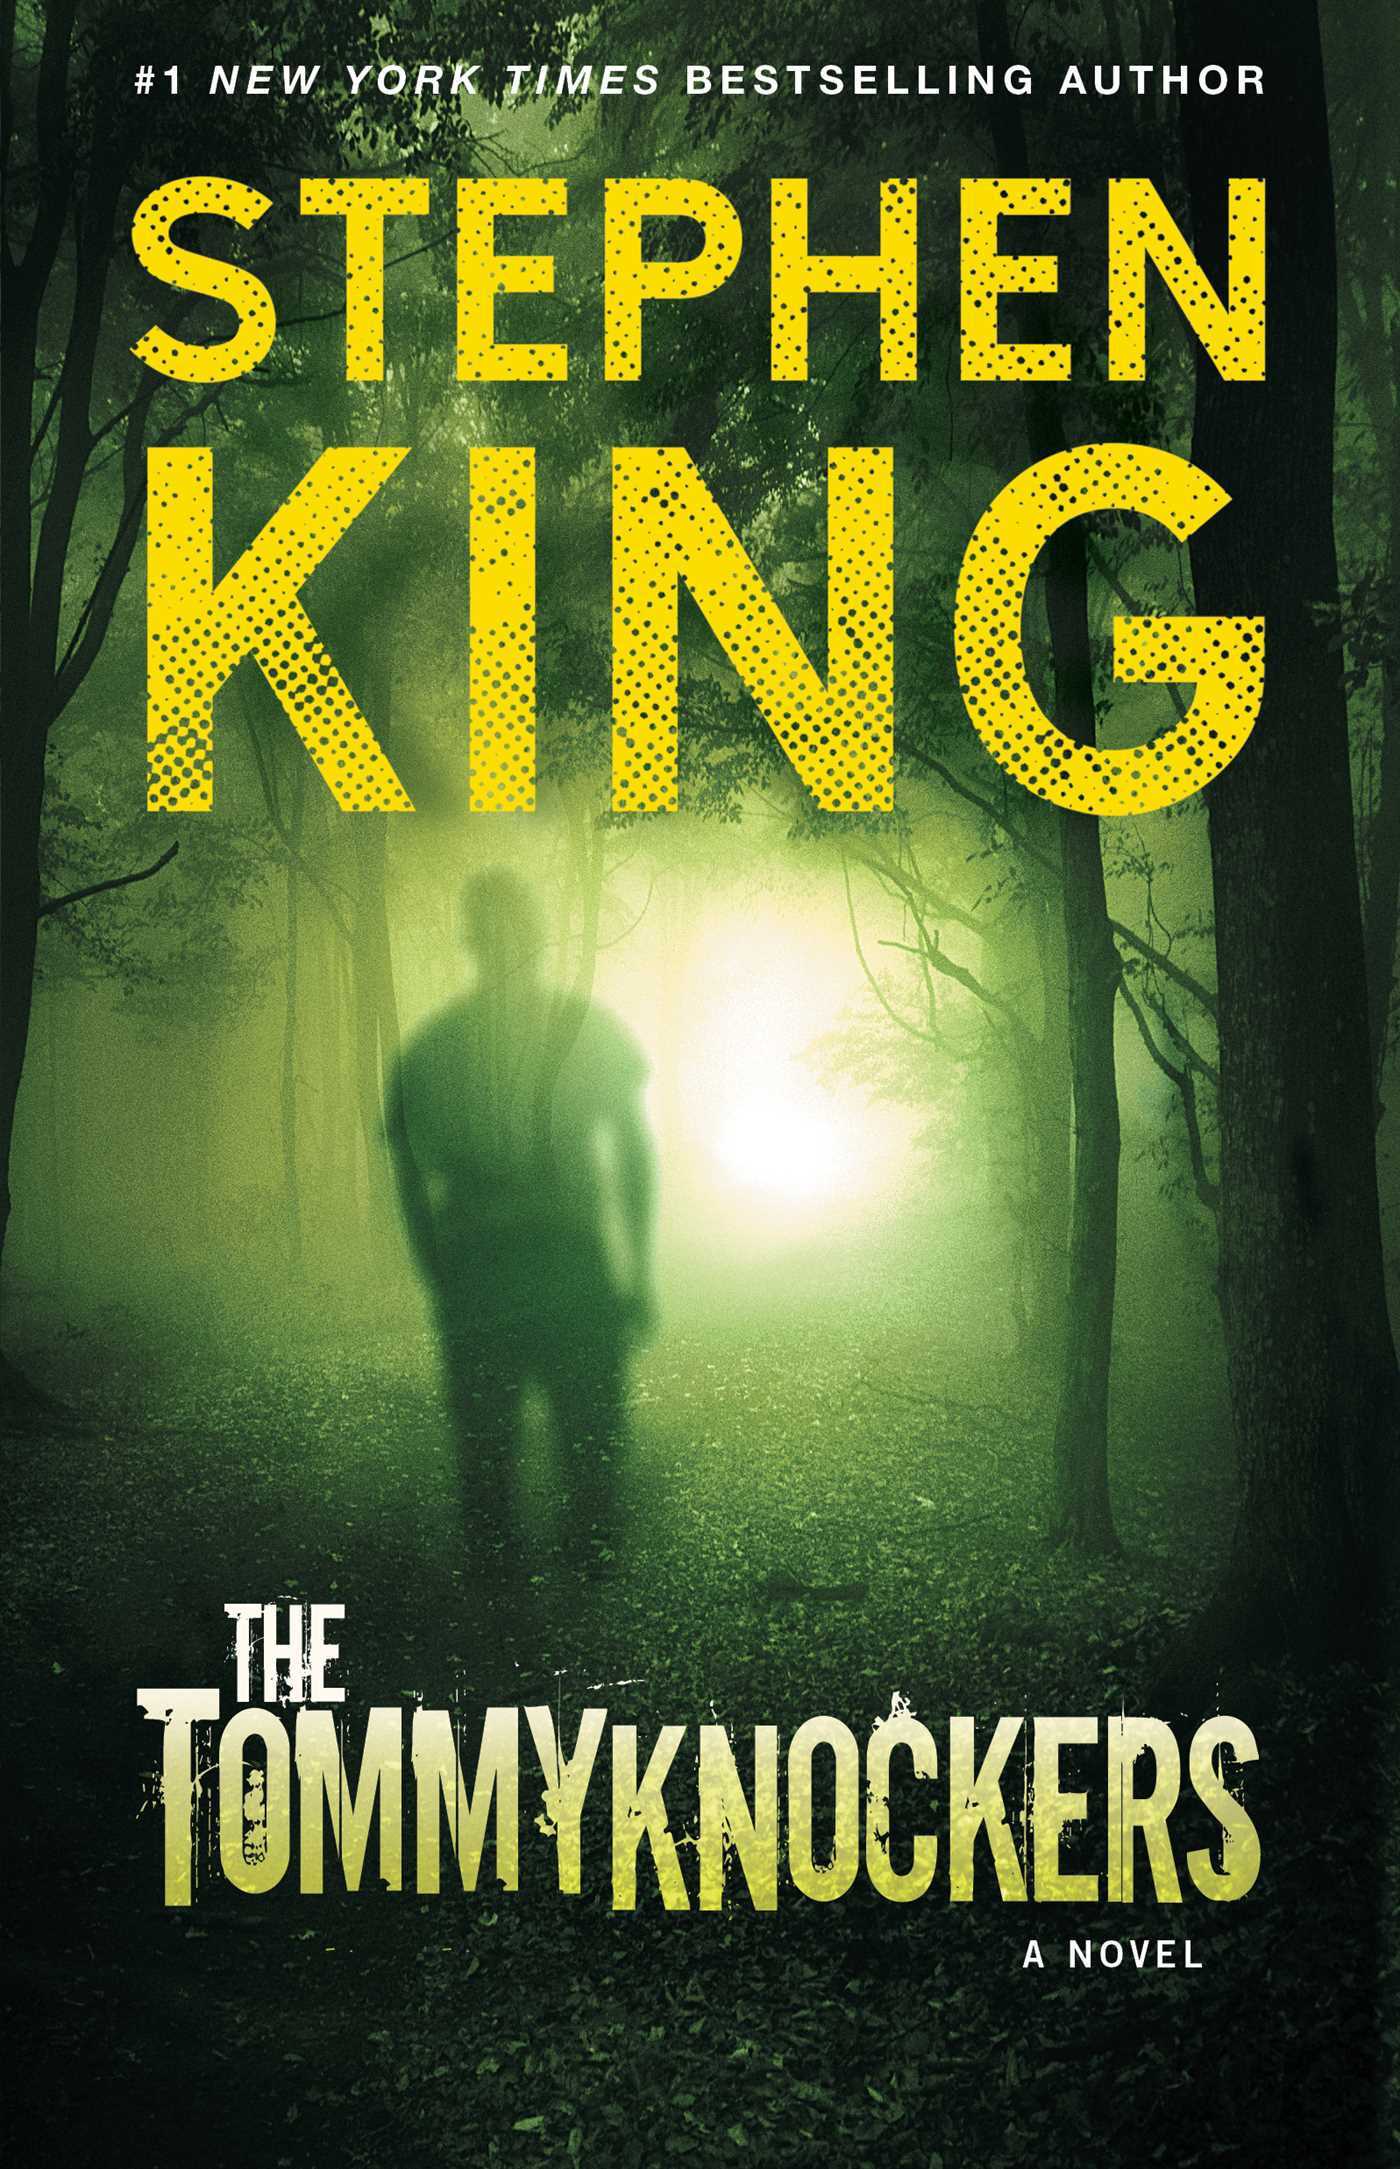 the tommyknockers by stephen king essay New listing 1st edition stephen king novel lot the tommy knockers, dark half, skeleton the tommyknockers stephen king hardcover 1987 1st print putnam publishing.